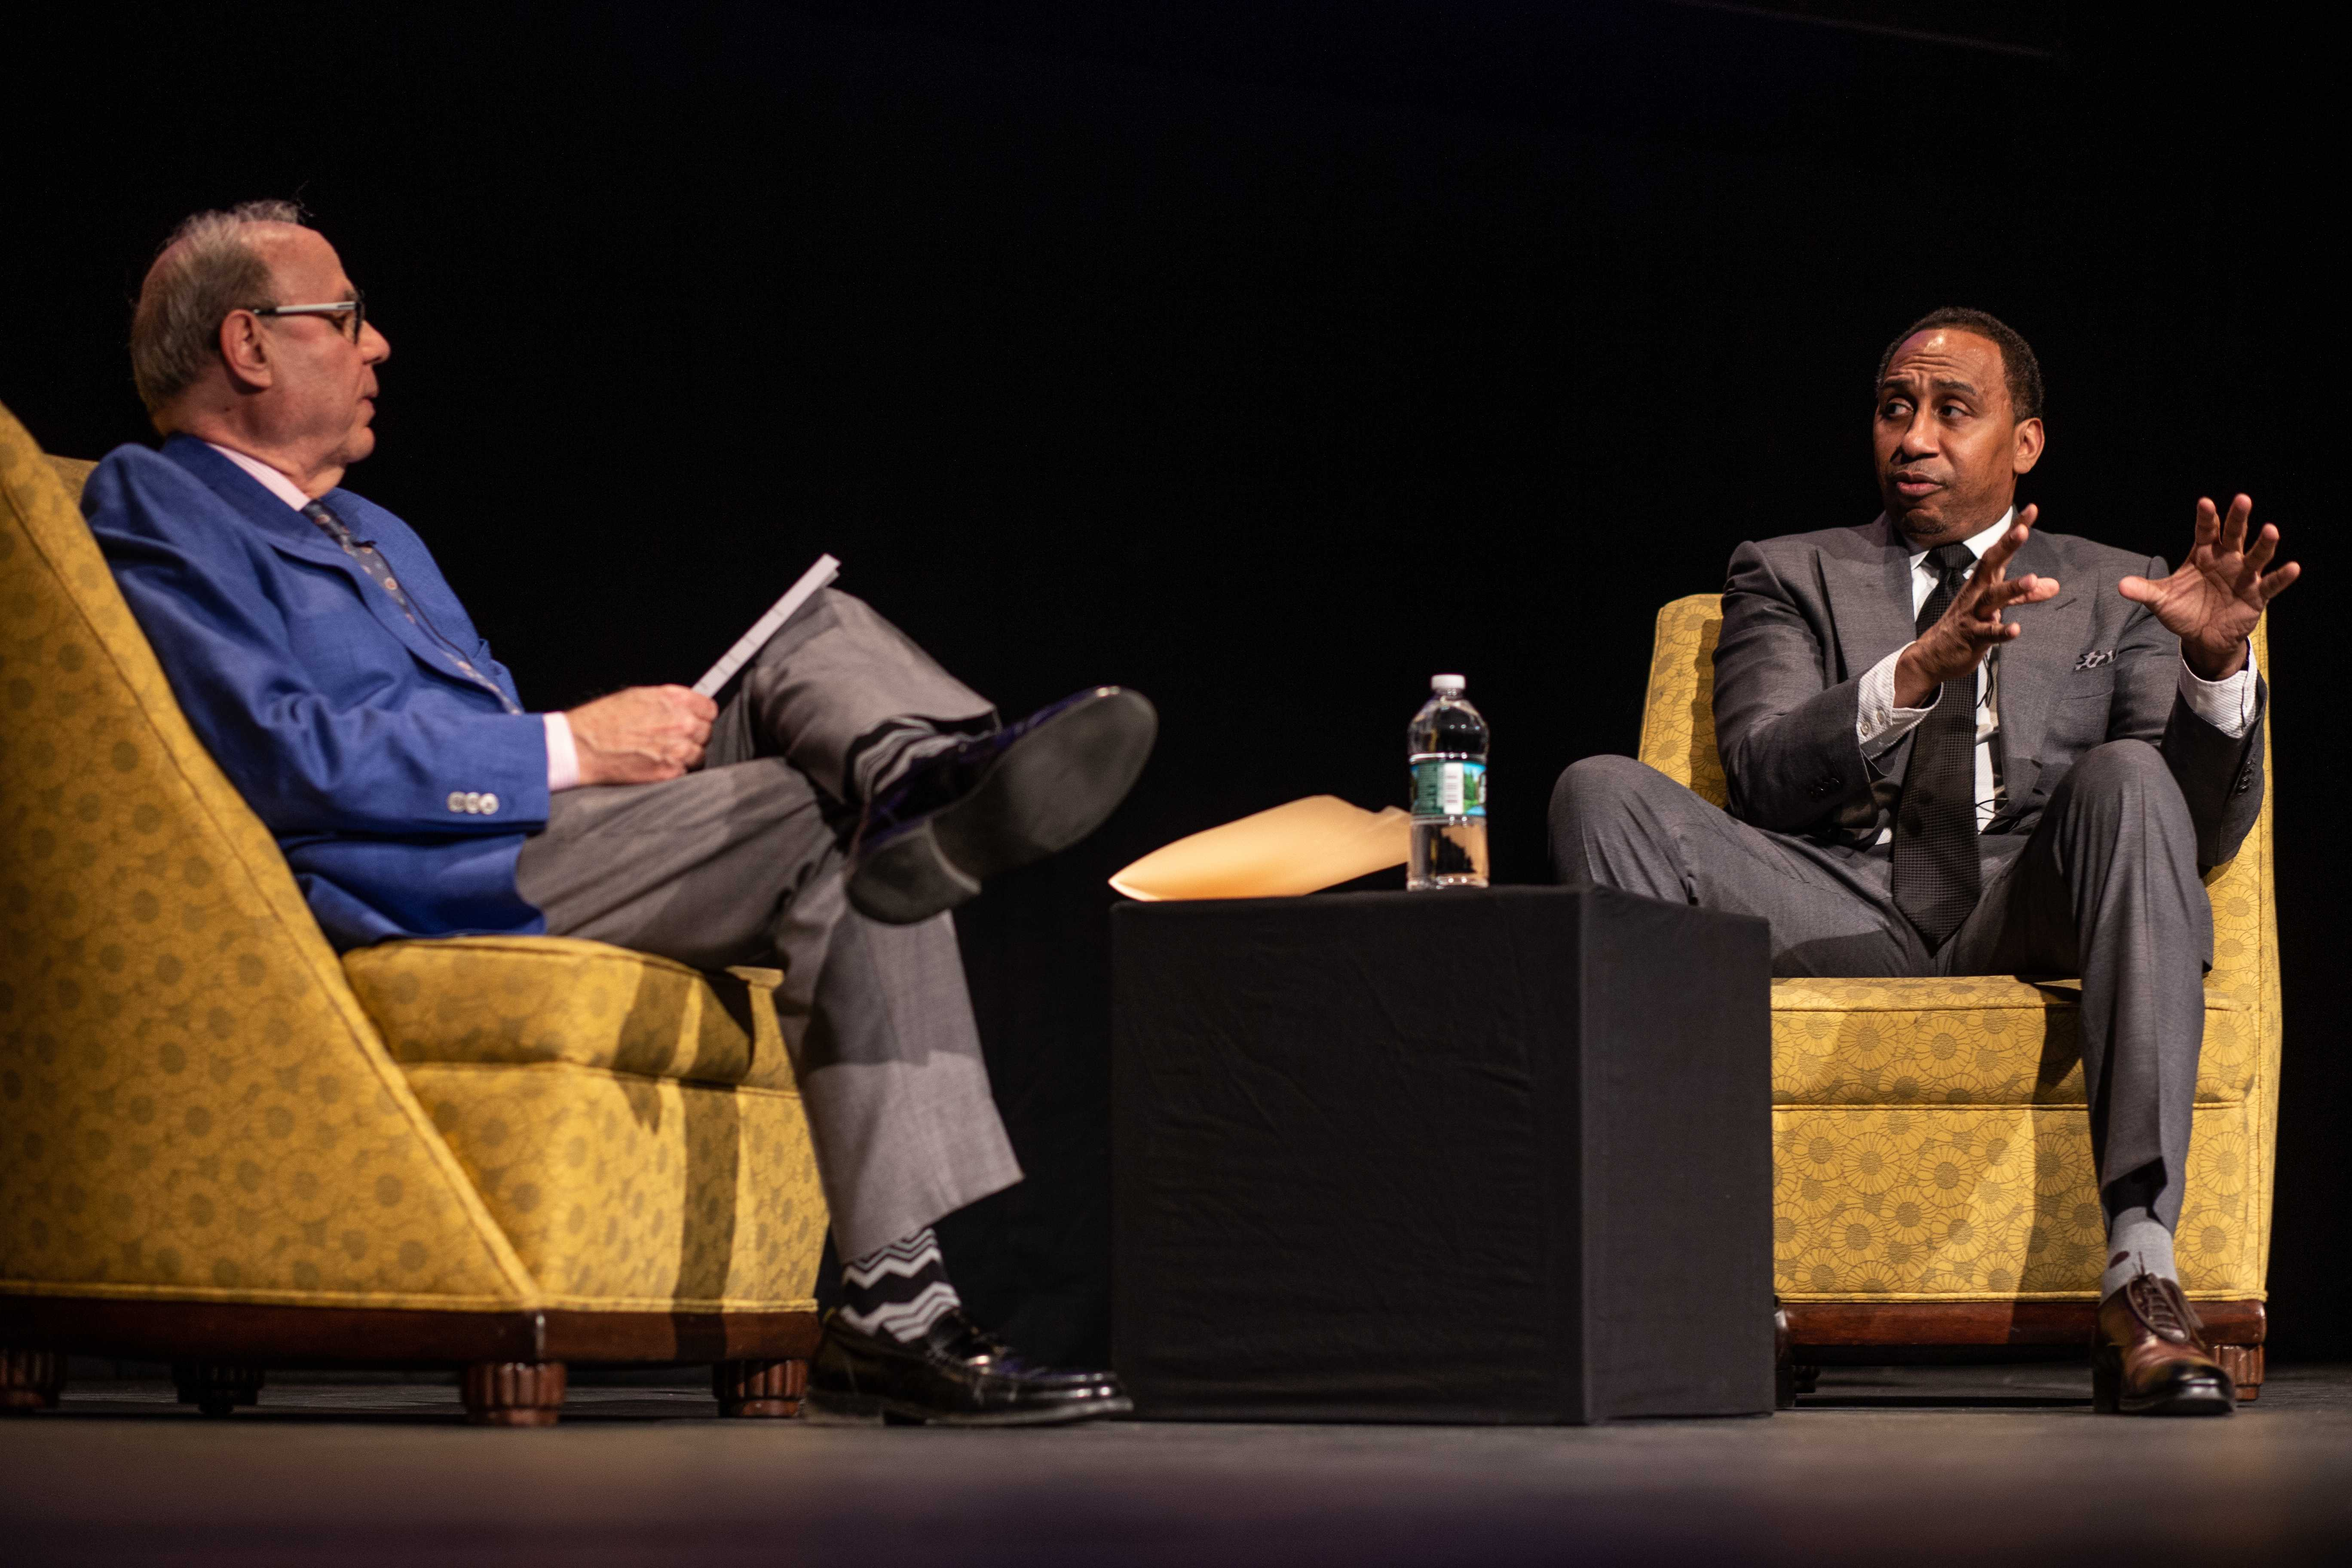 Al Jaffe (left) and Stephen A. Smith (right) spoke about sports journalism and gave advice to interested students. Photo by Alexa Schapiro / Beacon Staff